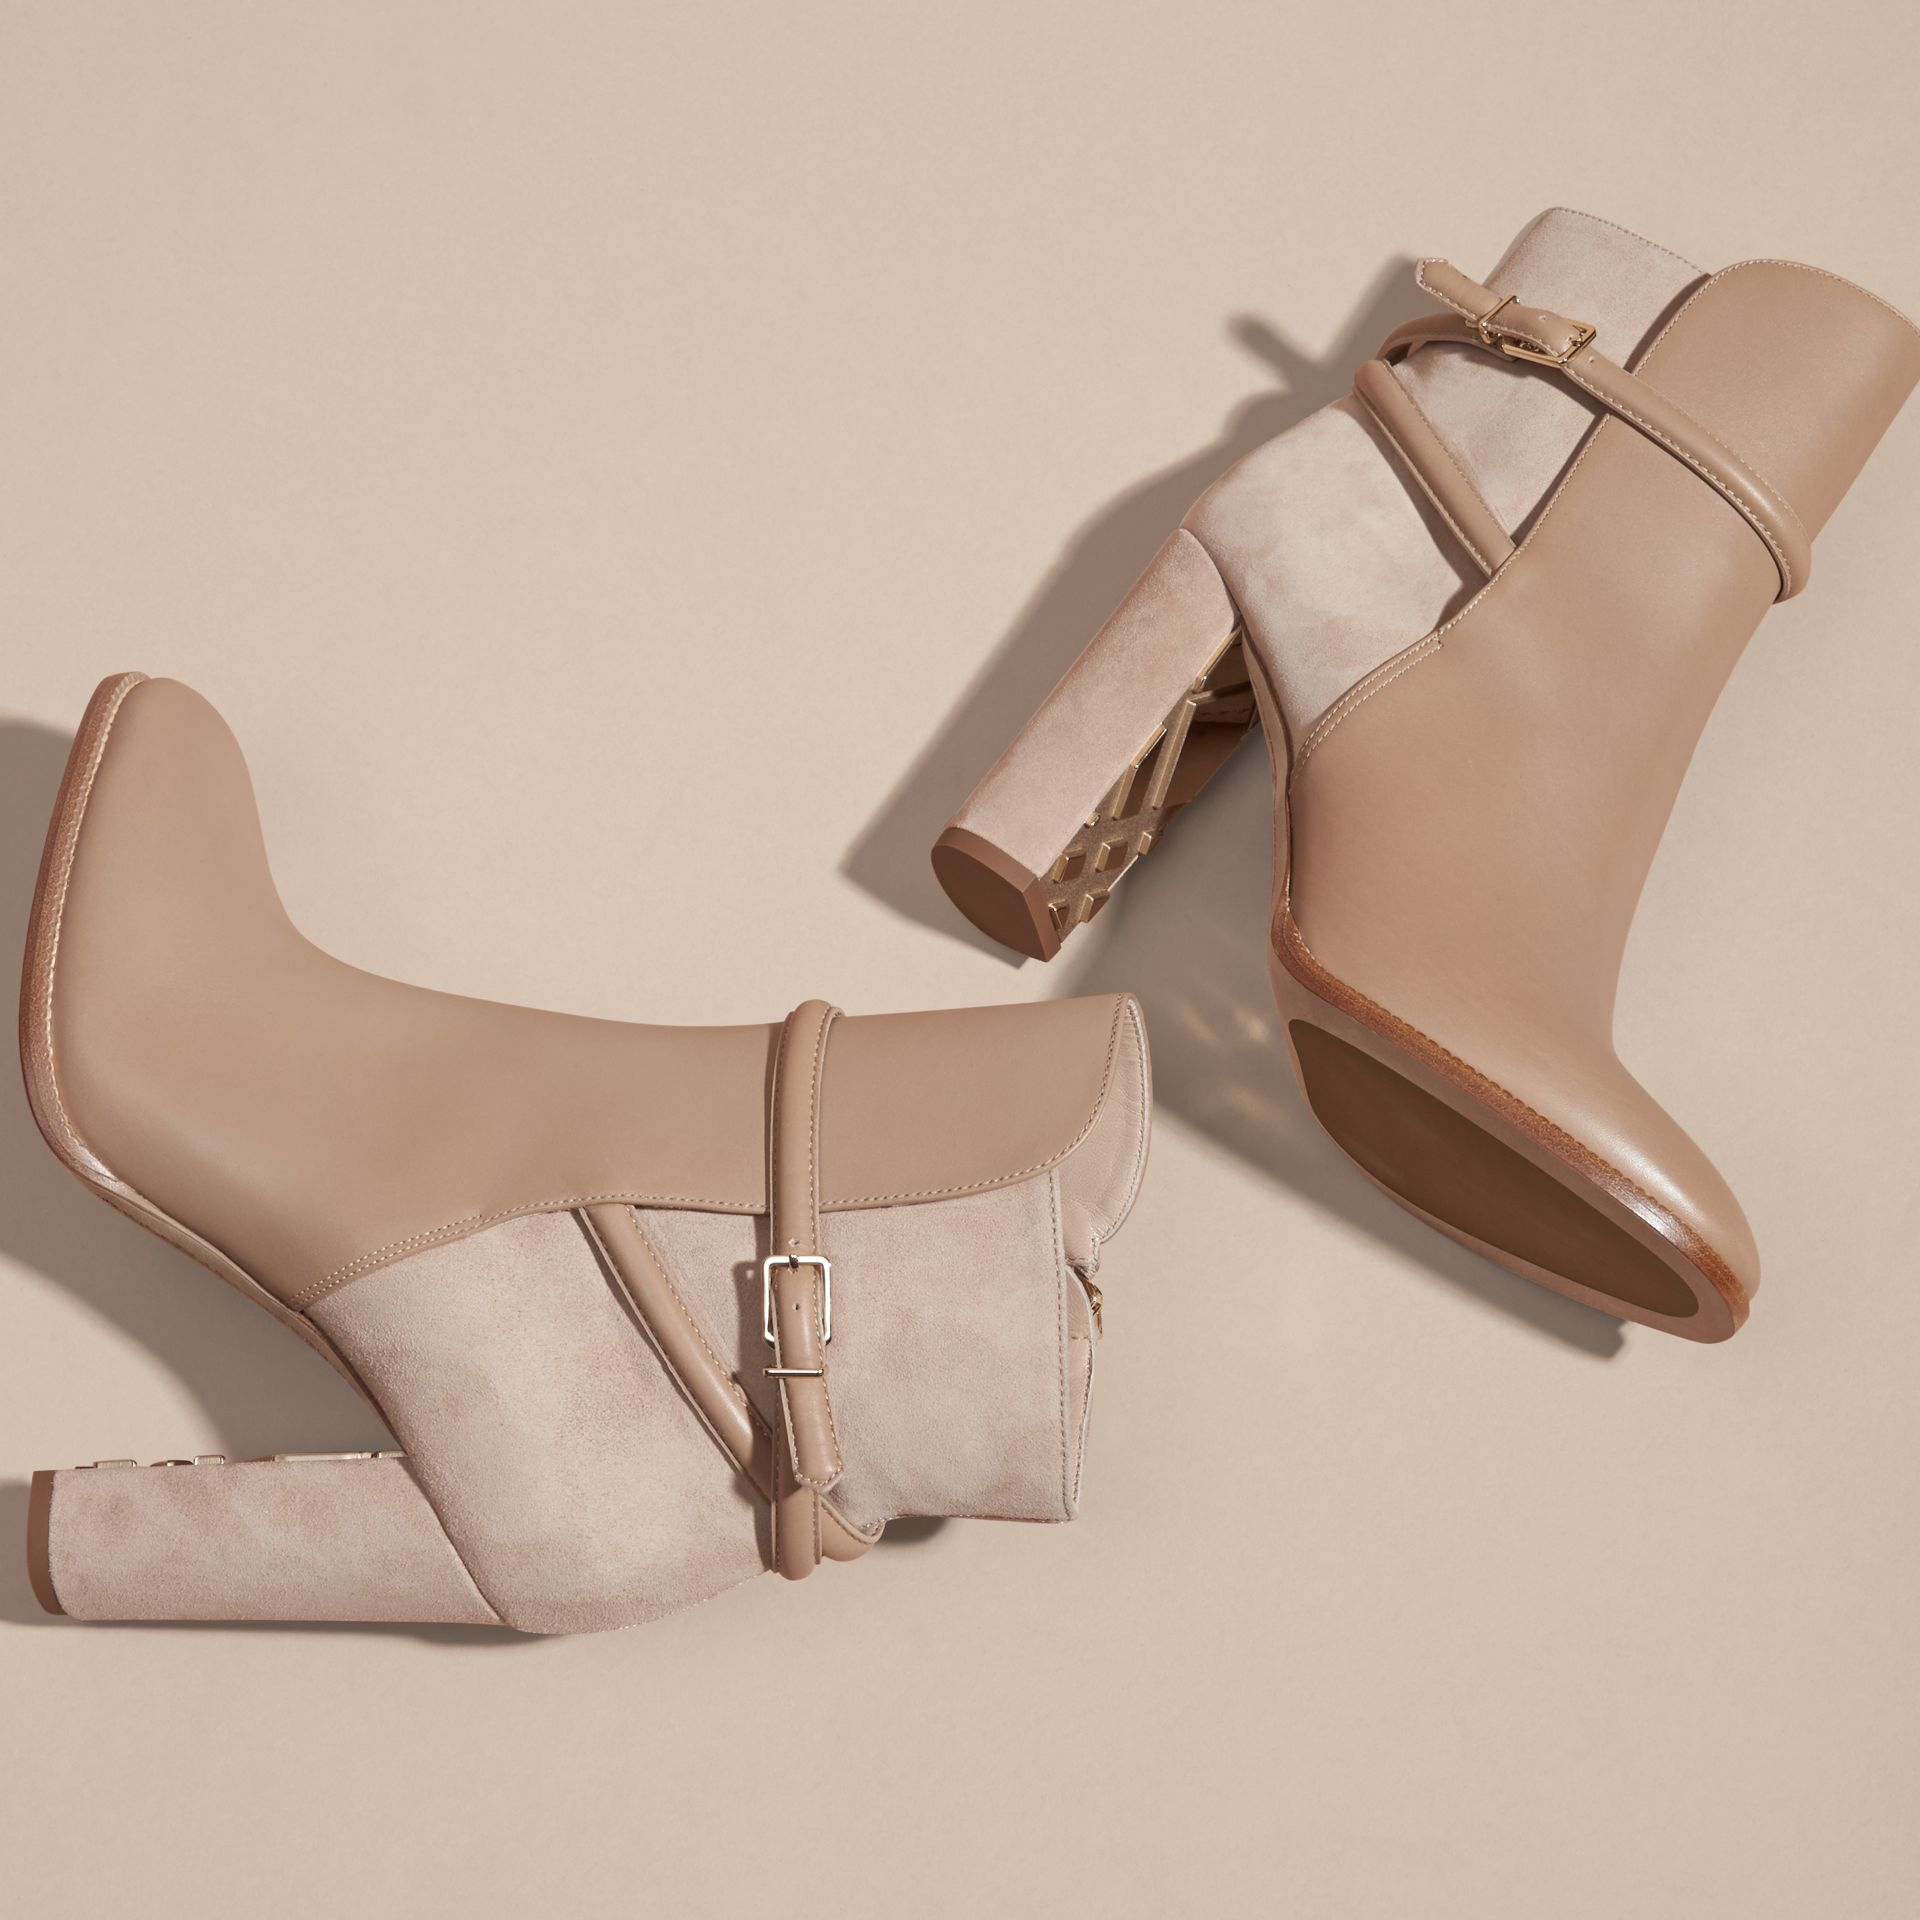 Light nude Strap Detail Leather and Suede Ankle Boots Light Nude - gallery image 5